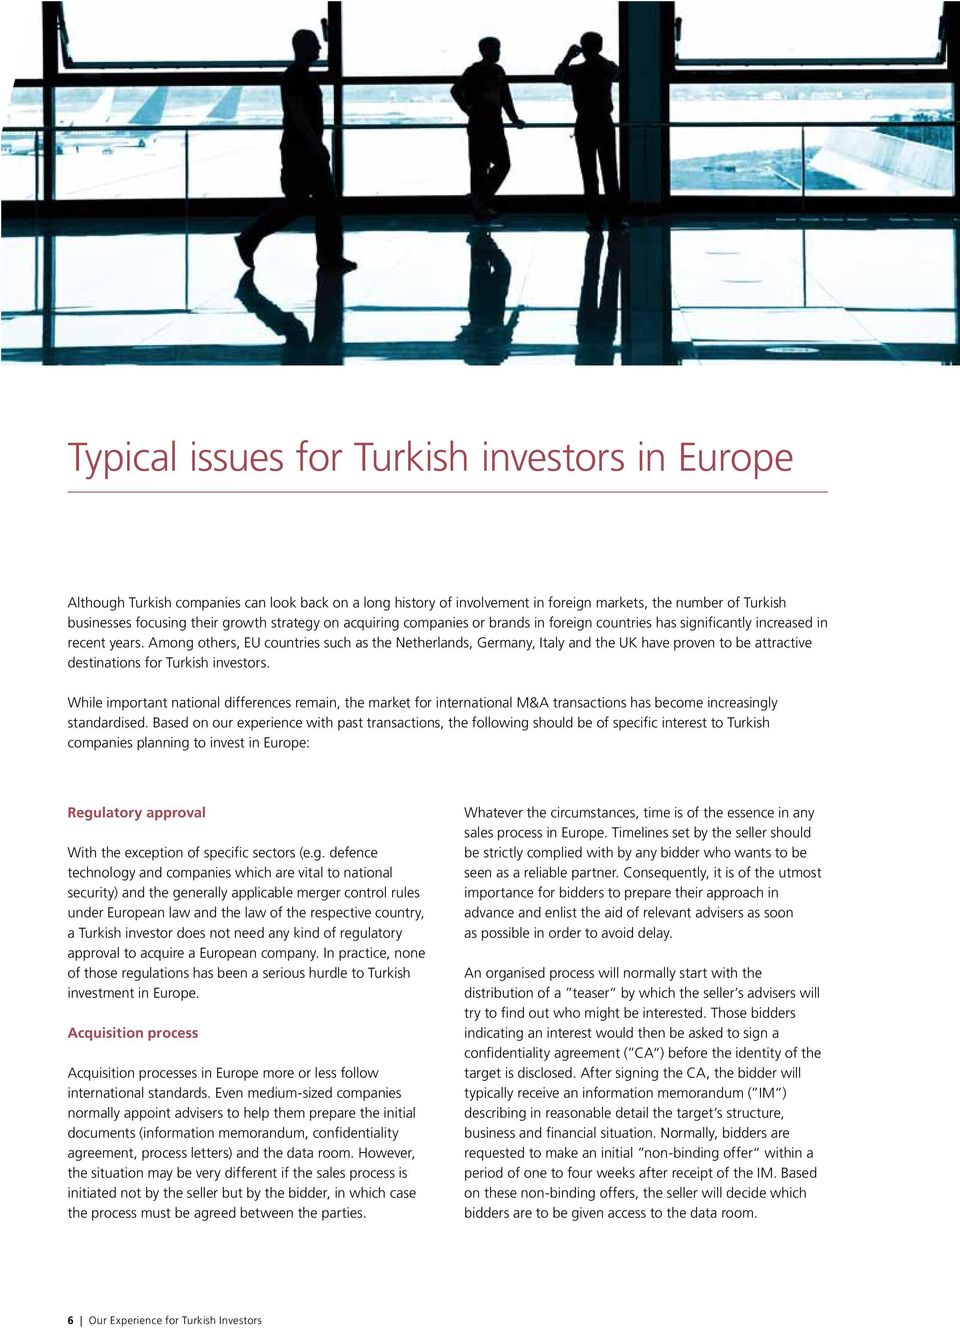 Among others, EU countries such as the Netherlands, Germany, Italy and the UK have proven to be attractive destinations for Turkish investors.